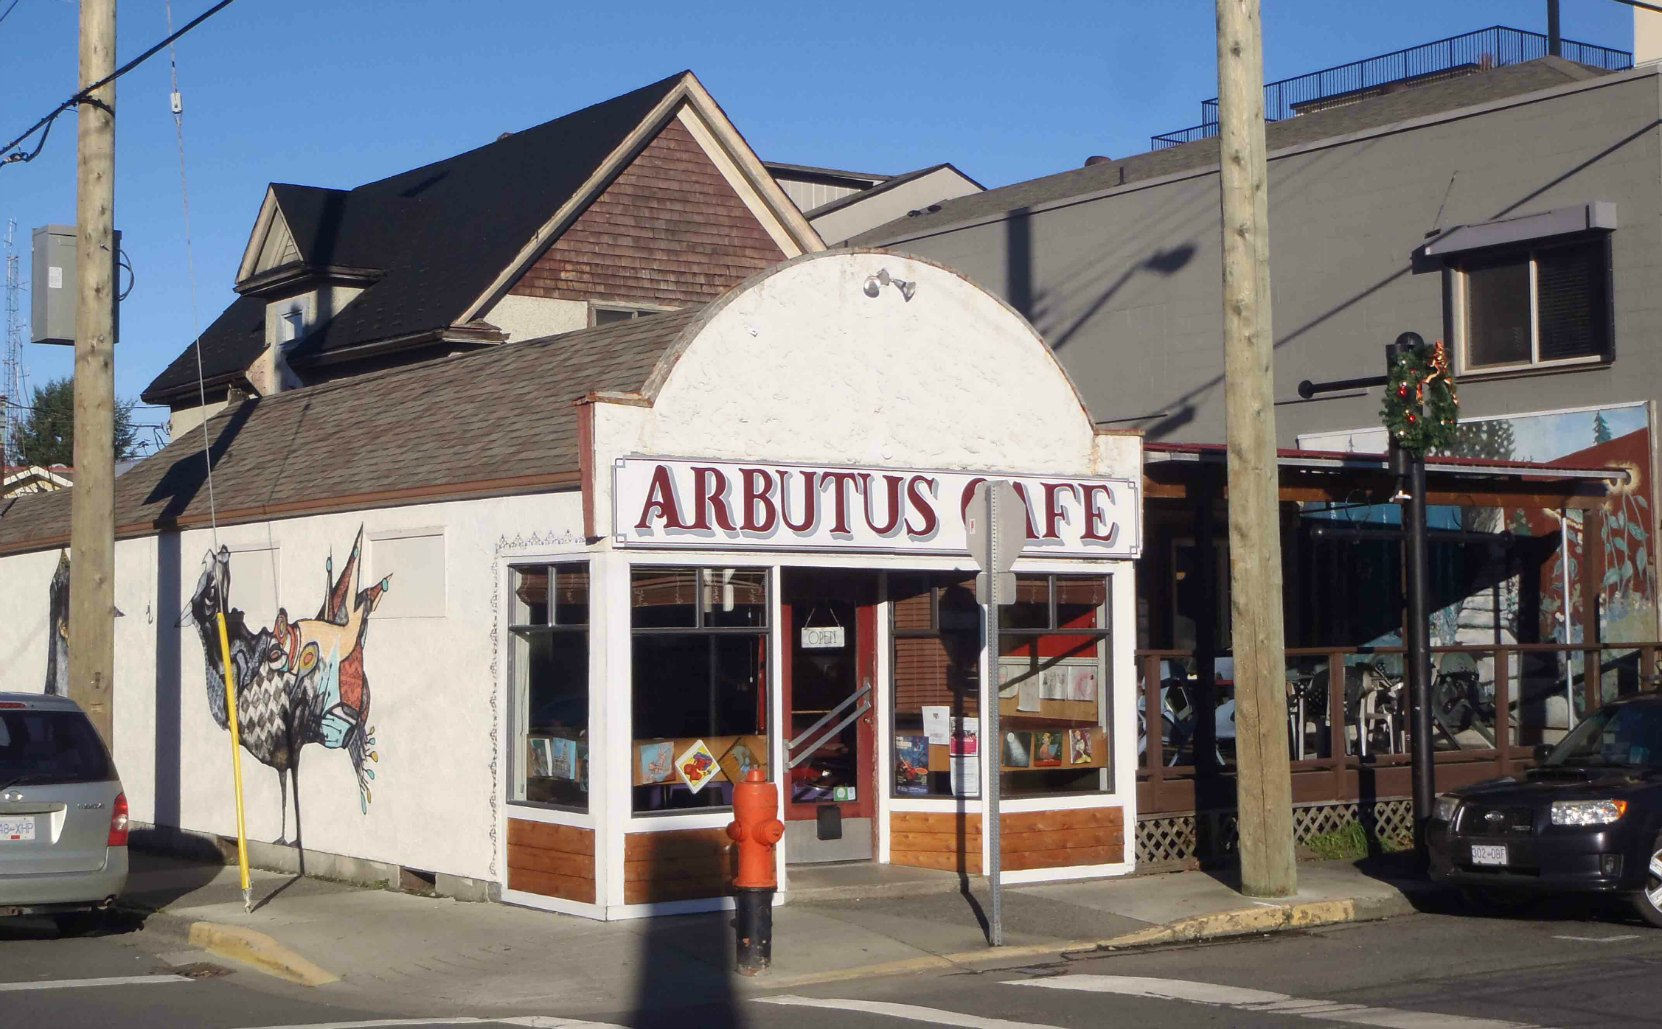 Arbutus Cafe, 195 Kenneth Street, Duncan, B.C.